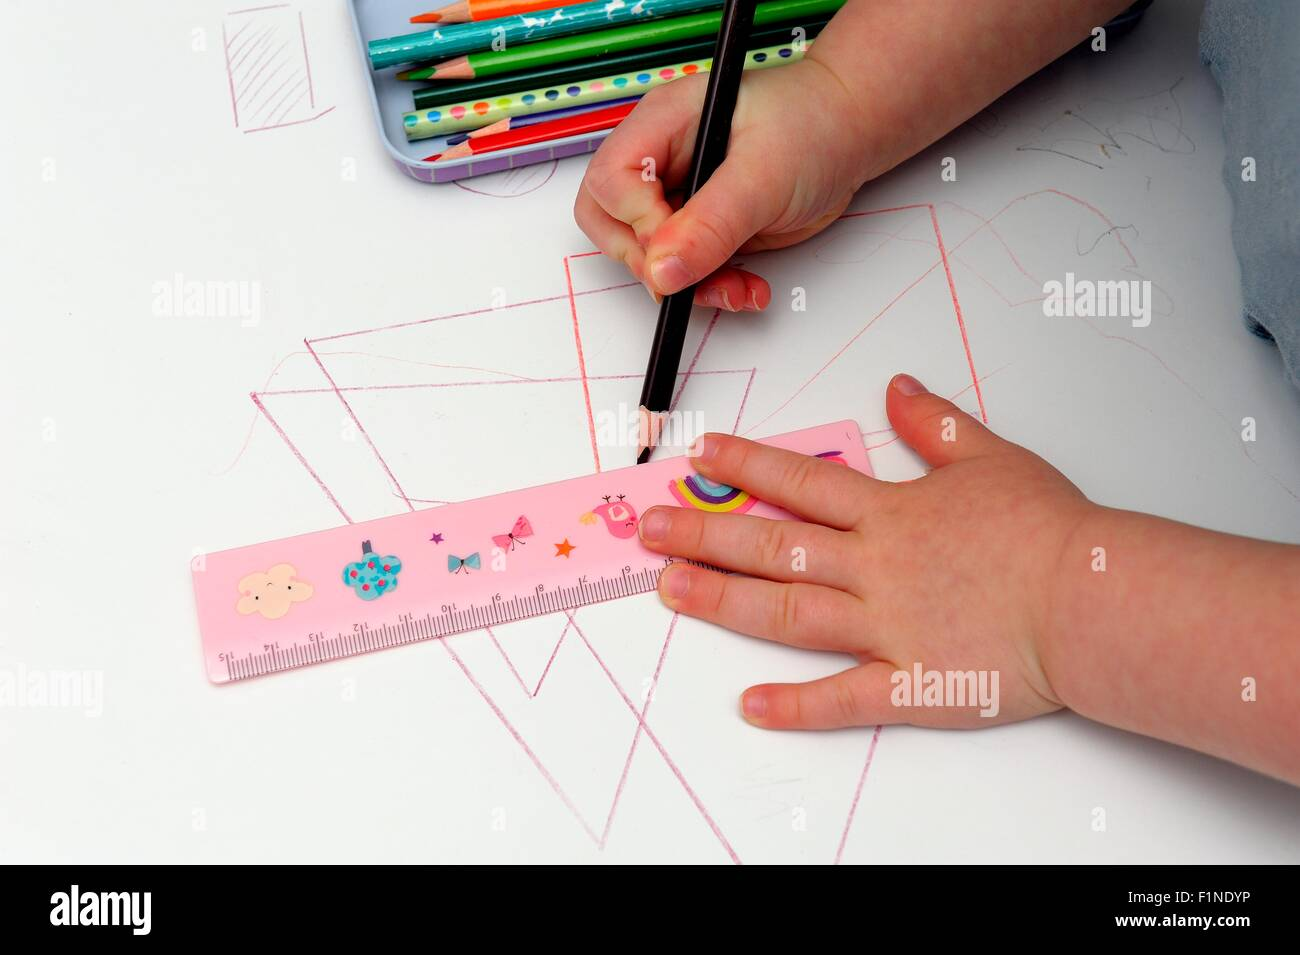 Drawing Lines Using A Ruler : A year old toddler girl using ruler to draw straight